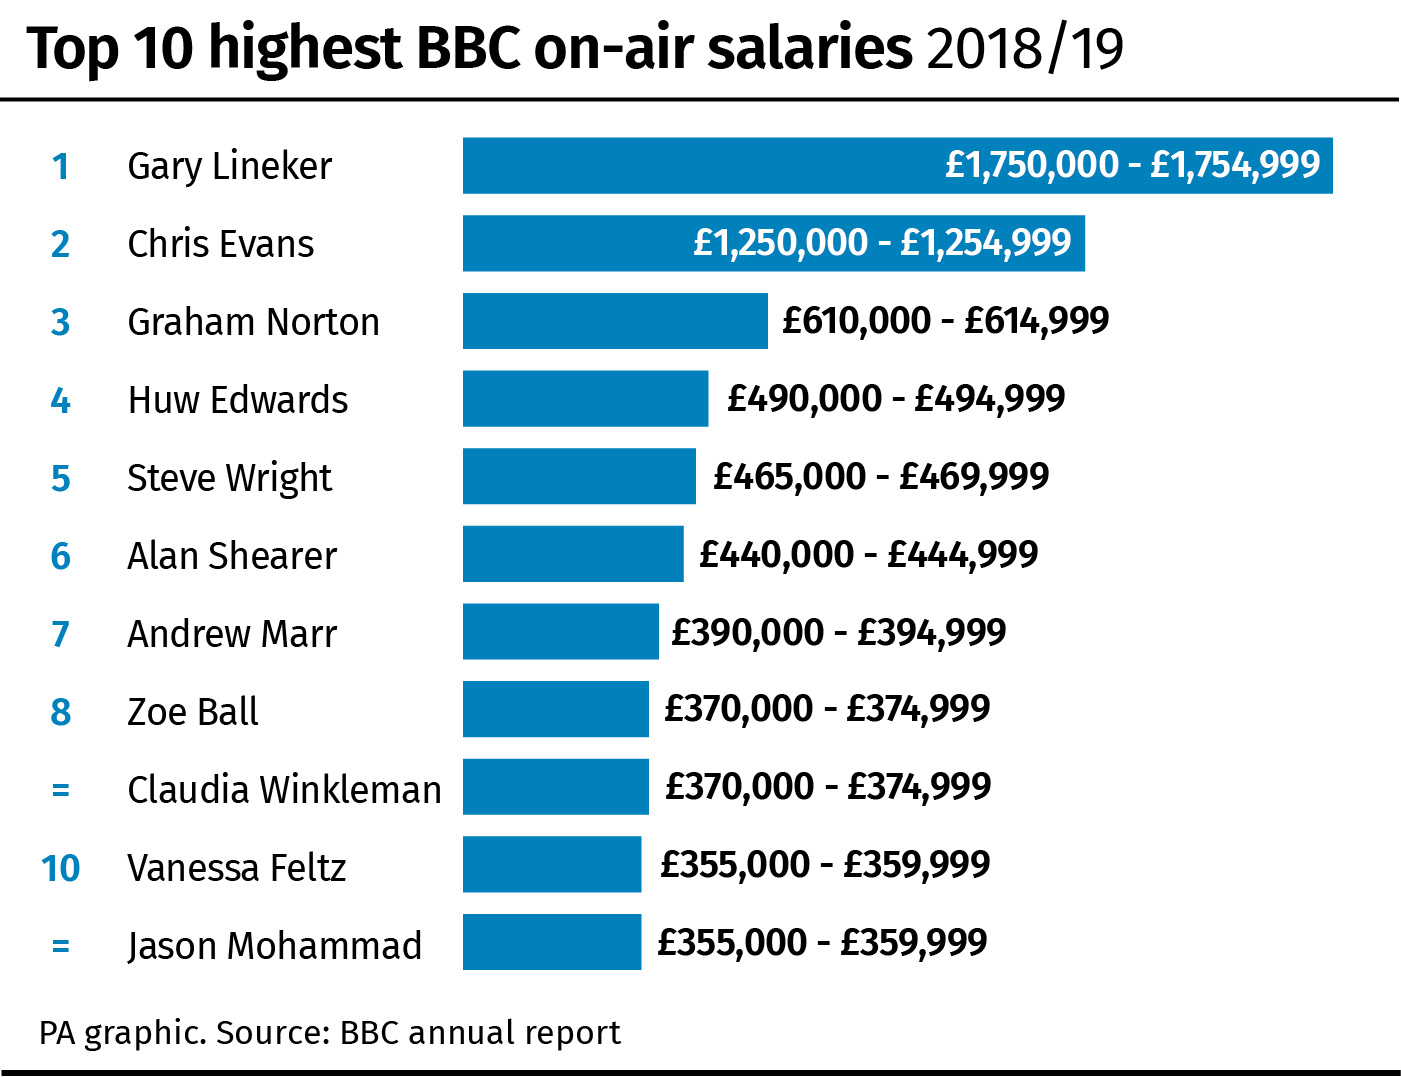 Top 10 highest BBC on-air salaries